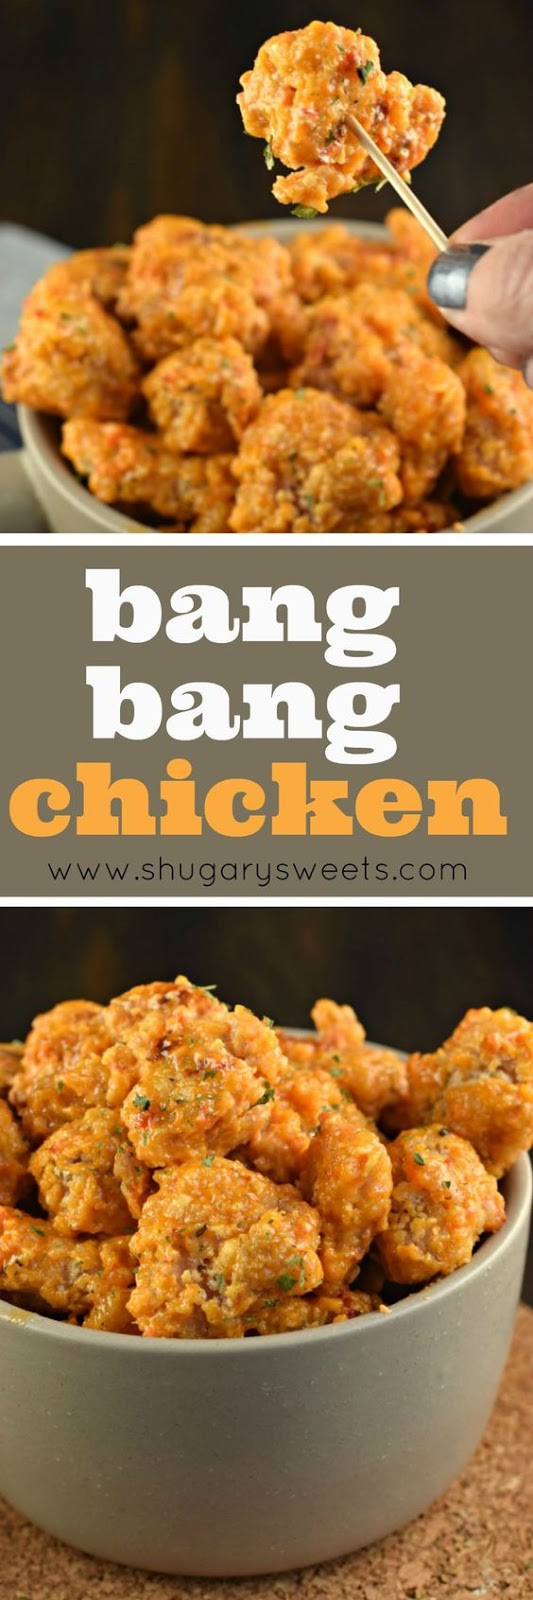 Bang Bang Chicken   #DESSERTS #HEALTHYFOOD #EASYRECIPES #DINNER #LAUCH #DELICIOUS #EASY #HOLIDAYS #RECIPE #SPECIALDIET #WORLDCUISINE #CAKE #APPETIZERS #HEALTHYRECIPES #DRINKS #COOKINGMETHOD #ITALIANRECIPES #MEAT #VEGANRECIPES #COOKIES #PASTA #FRUIT #SALAD #SOUPAPPETIZERS #NONALCOHOLICDRINKS #MEALPLANNING #VEGETABLES #SOUP #PASTRY #CHOCOLATE #DAIRY #ALCOHOLICDRINKS #BULGURSALAD #BAKING #SNACKS #BEEFRECIPES #MEATAPPETIZERS #MEXICANRECIPES #BREAD #ASIANRECIPES #SEAFOODAPPETIZERS #MUFFINS #BREAKFASTANDBRUNCH #CONDIMENTS #CUPCAKES #CHEESE #CHICKENRECIPES #PIE #COFFEE #NOBAKEDESSERTS #HEALTHYSNACKS #SEAFOOD #GRAIN #LUNCHESDINNERS #MEXICAN #QUICKBREAD #LIQUOR